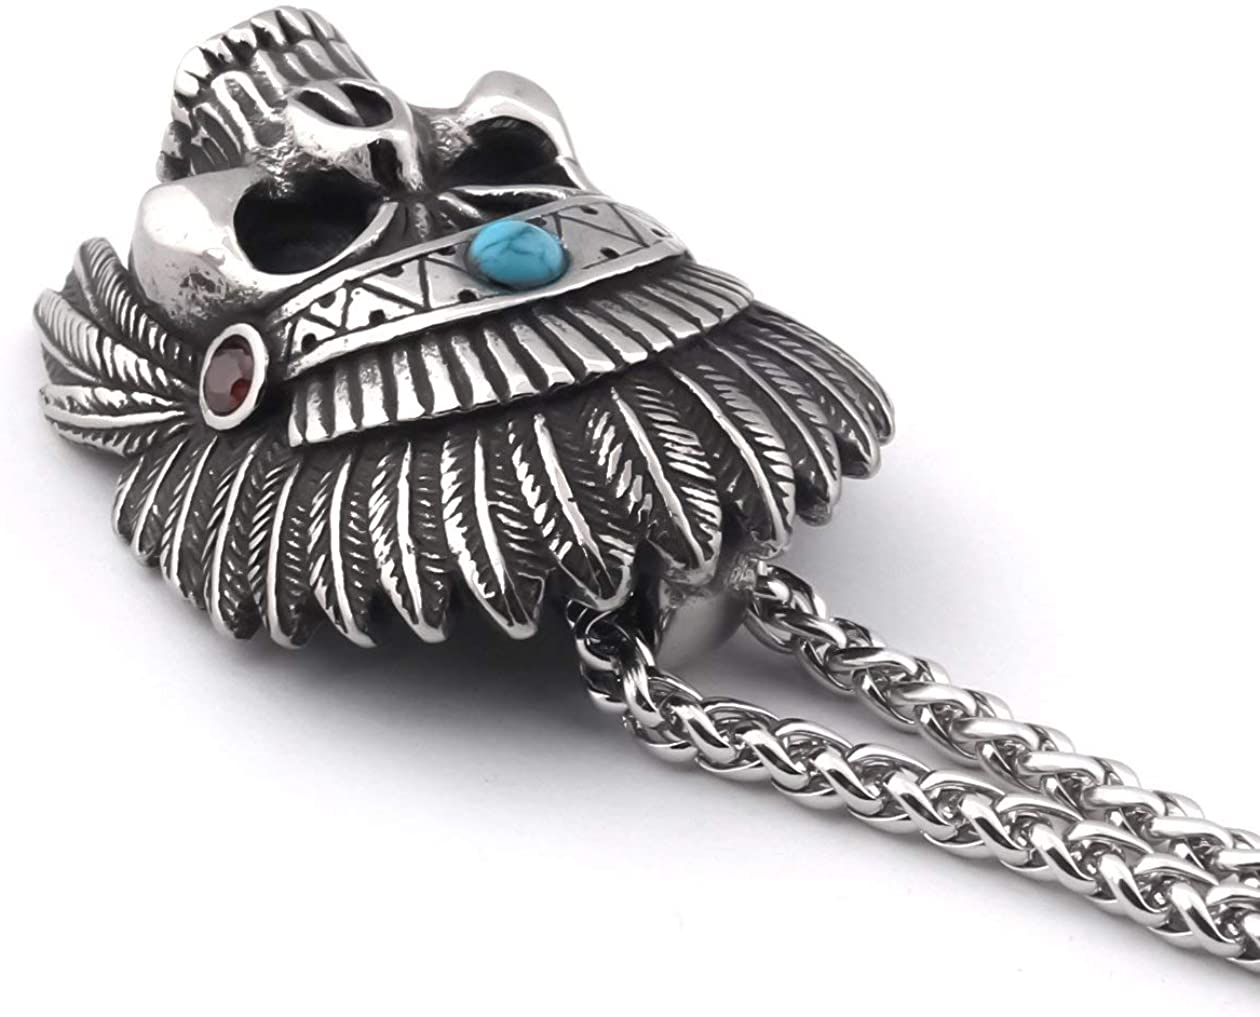 GUNGNEER Native American Chief Skull Pendant Stainless Steel Keel Chain Necklace Indian Eagle Tribal Jewelry for Mens Womens